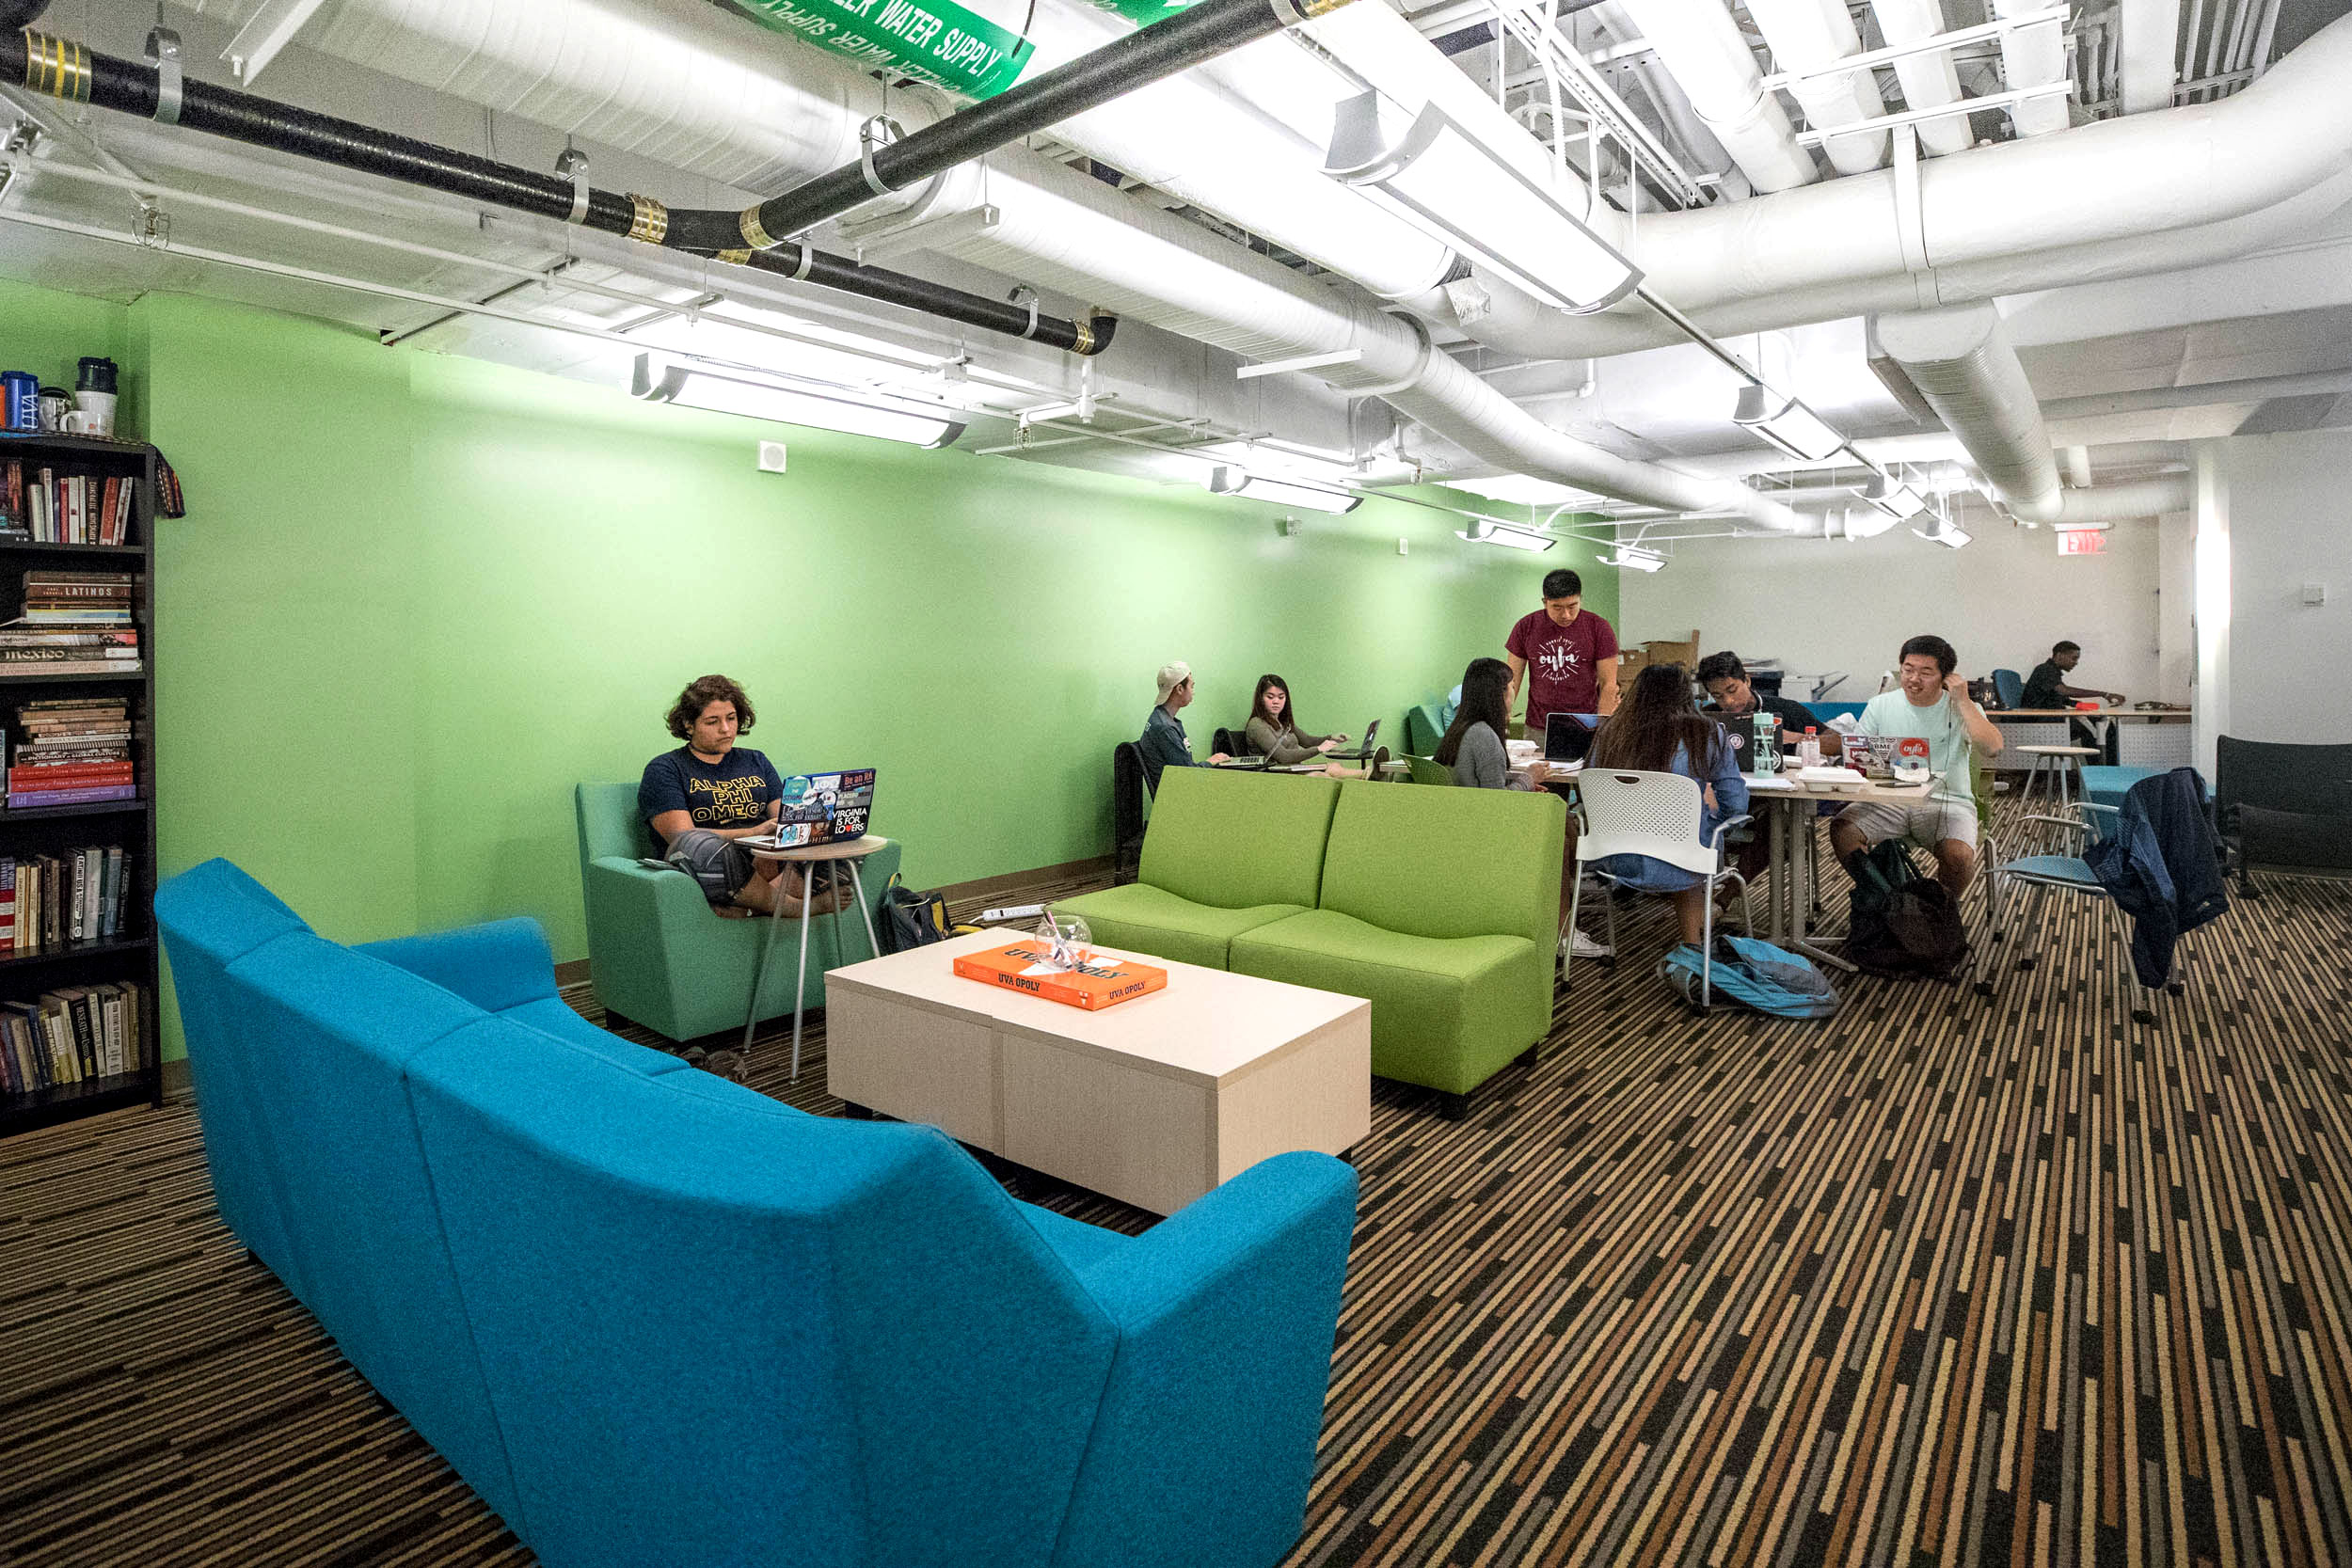 Students are already taking advantage of the Multicultural Center by using it as a place to study, collaborate, hold meetings and host events. (Photos by Sanjay Suchak, University Communications)